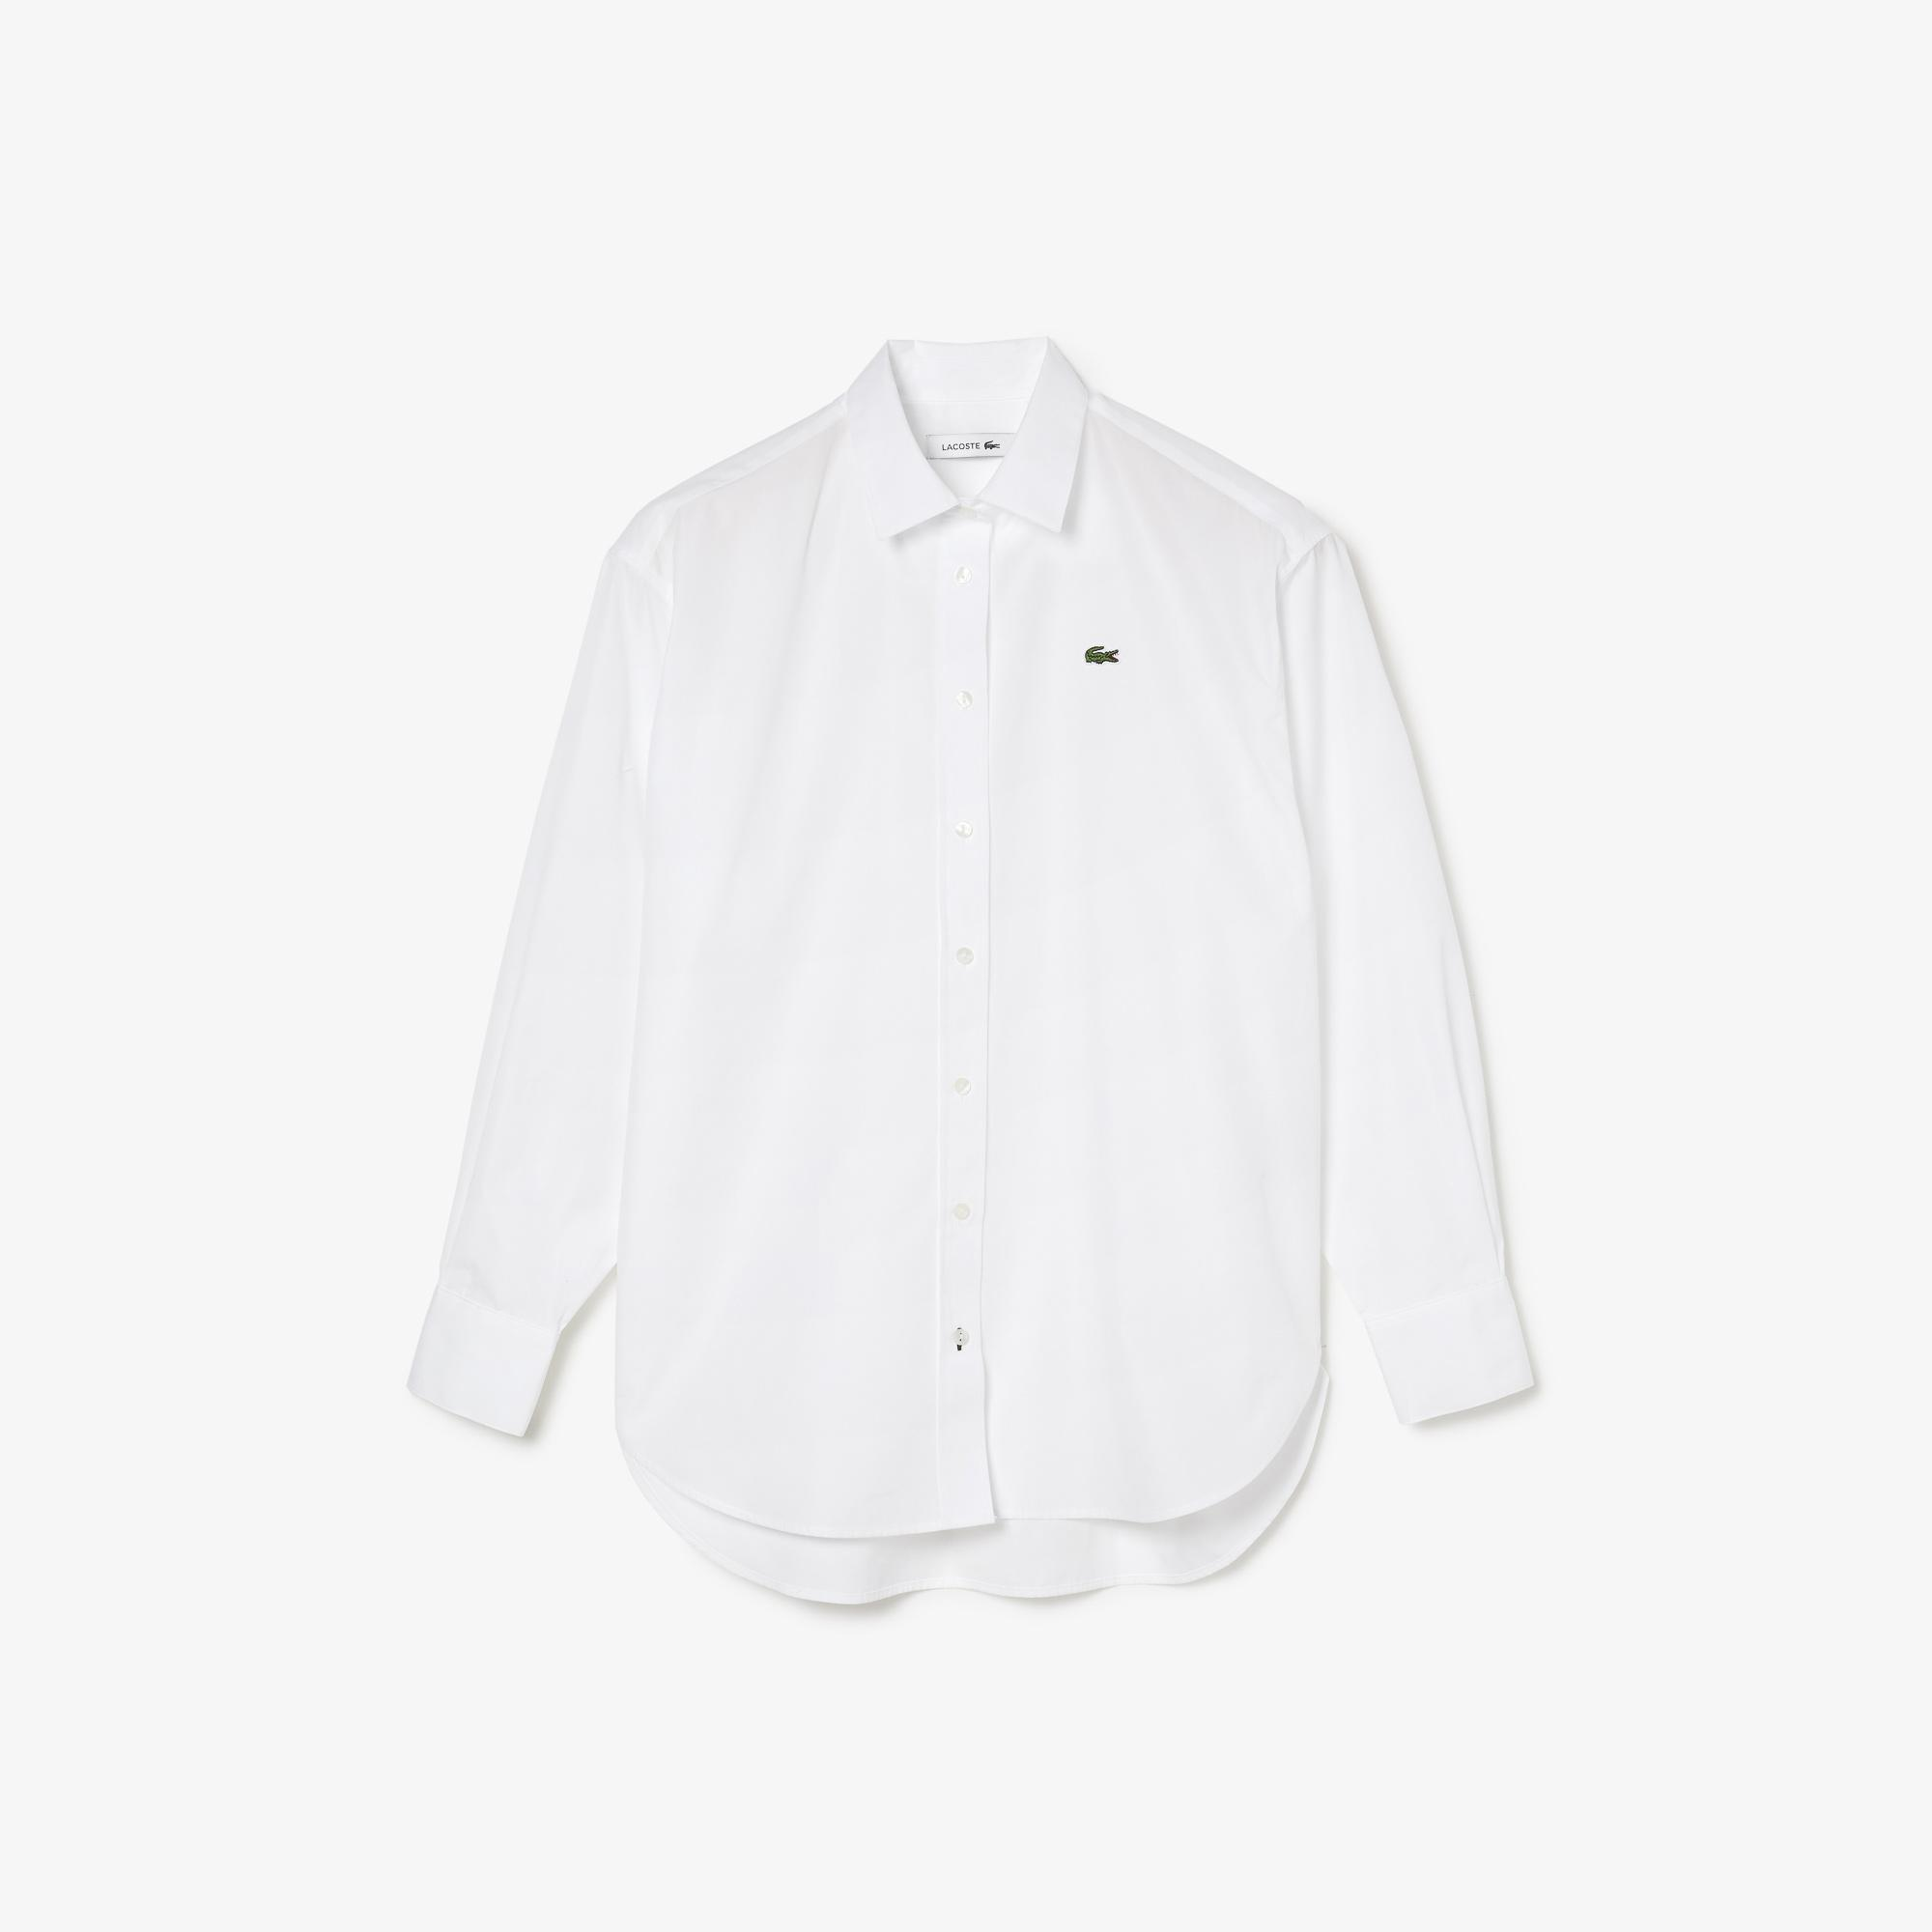 Lacoste Women's Oversized Striped Cotton Poplin Shirt